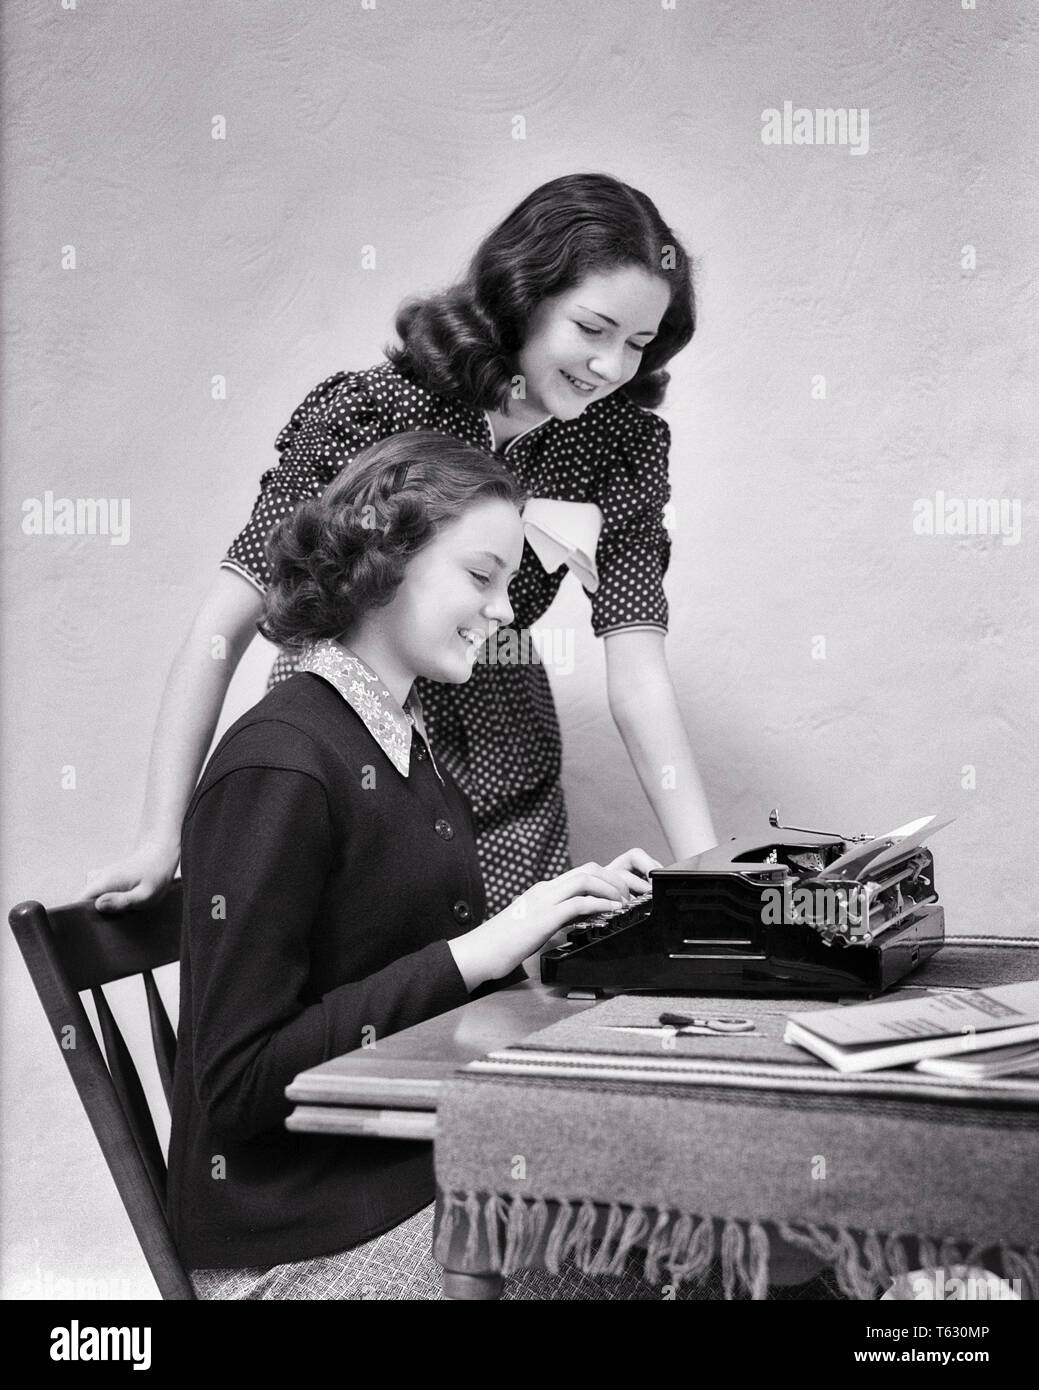 1930s 1940S  TWO TEEN GIRLS WORKING ON SCHOOL PROJECT ONE SEATED AT PORTABLE TYPEWRITER - s8347 HAR001 HARS YOUNG ADULT TEAMWORK PLEASED JOY LIFESTYLE SATISFACTION FEMALES STUDIO SHOT HOME LIFE SEATED COPY SPACE FRIENDSHIP HALF-LENGTH LADIES PERSONS INSPIRATION TEENAGE GIRL SIBLINGS SISTERS PORTABLE B&W BRUNETTE HAPPINESS CHEERFUL TYPING VICTORY UNIVERSITIES HIGH SCHOOL SIBLING SMILES HIGH SCHOOLS HIGHER EDUCATION CONNECTION IMAGINATION JOYFUL STYLISH TEENAGED COLLEGES COOPERATION PROJECT SOLUTIONS YOUNG ADULT WOMAN BLACK AND WHITE CAUCASIAN ETHNICITY HAR001 OLD FASHIONED TYPIST - Stock Image